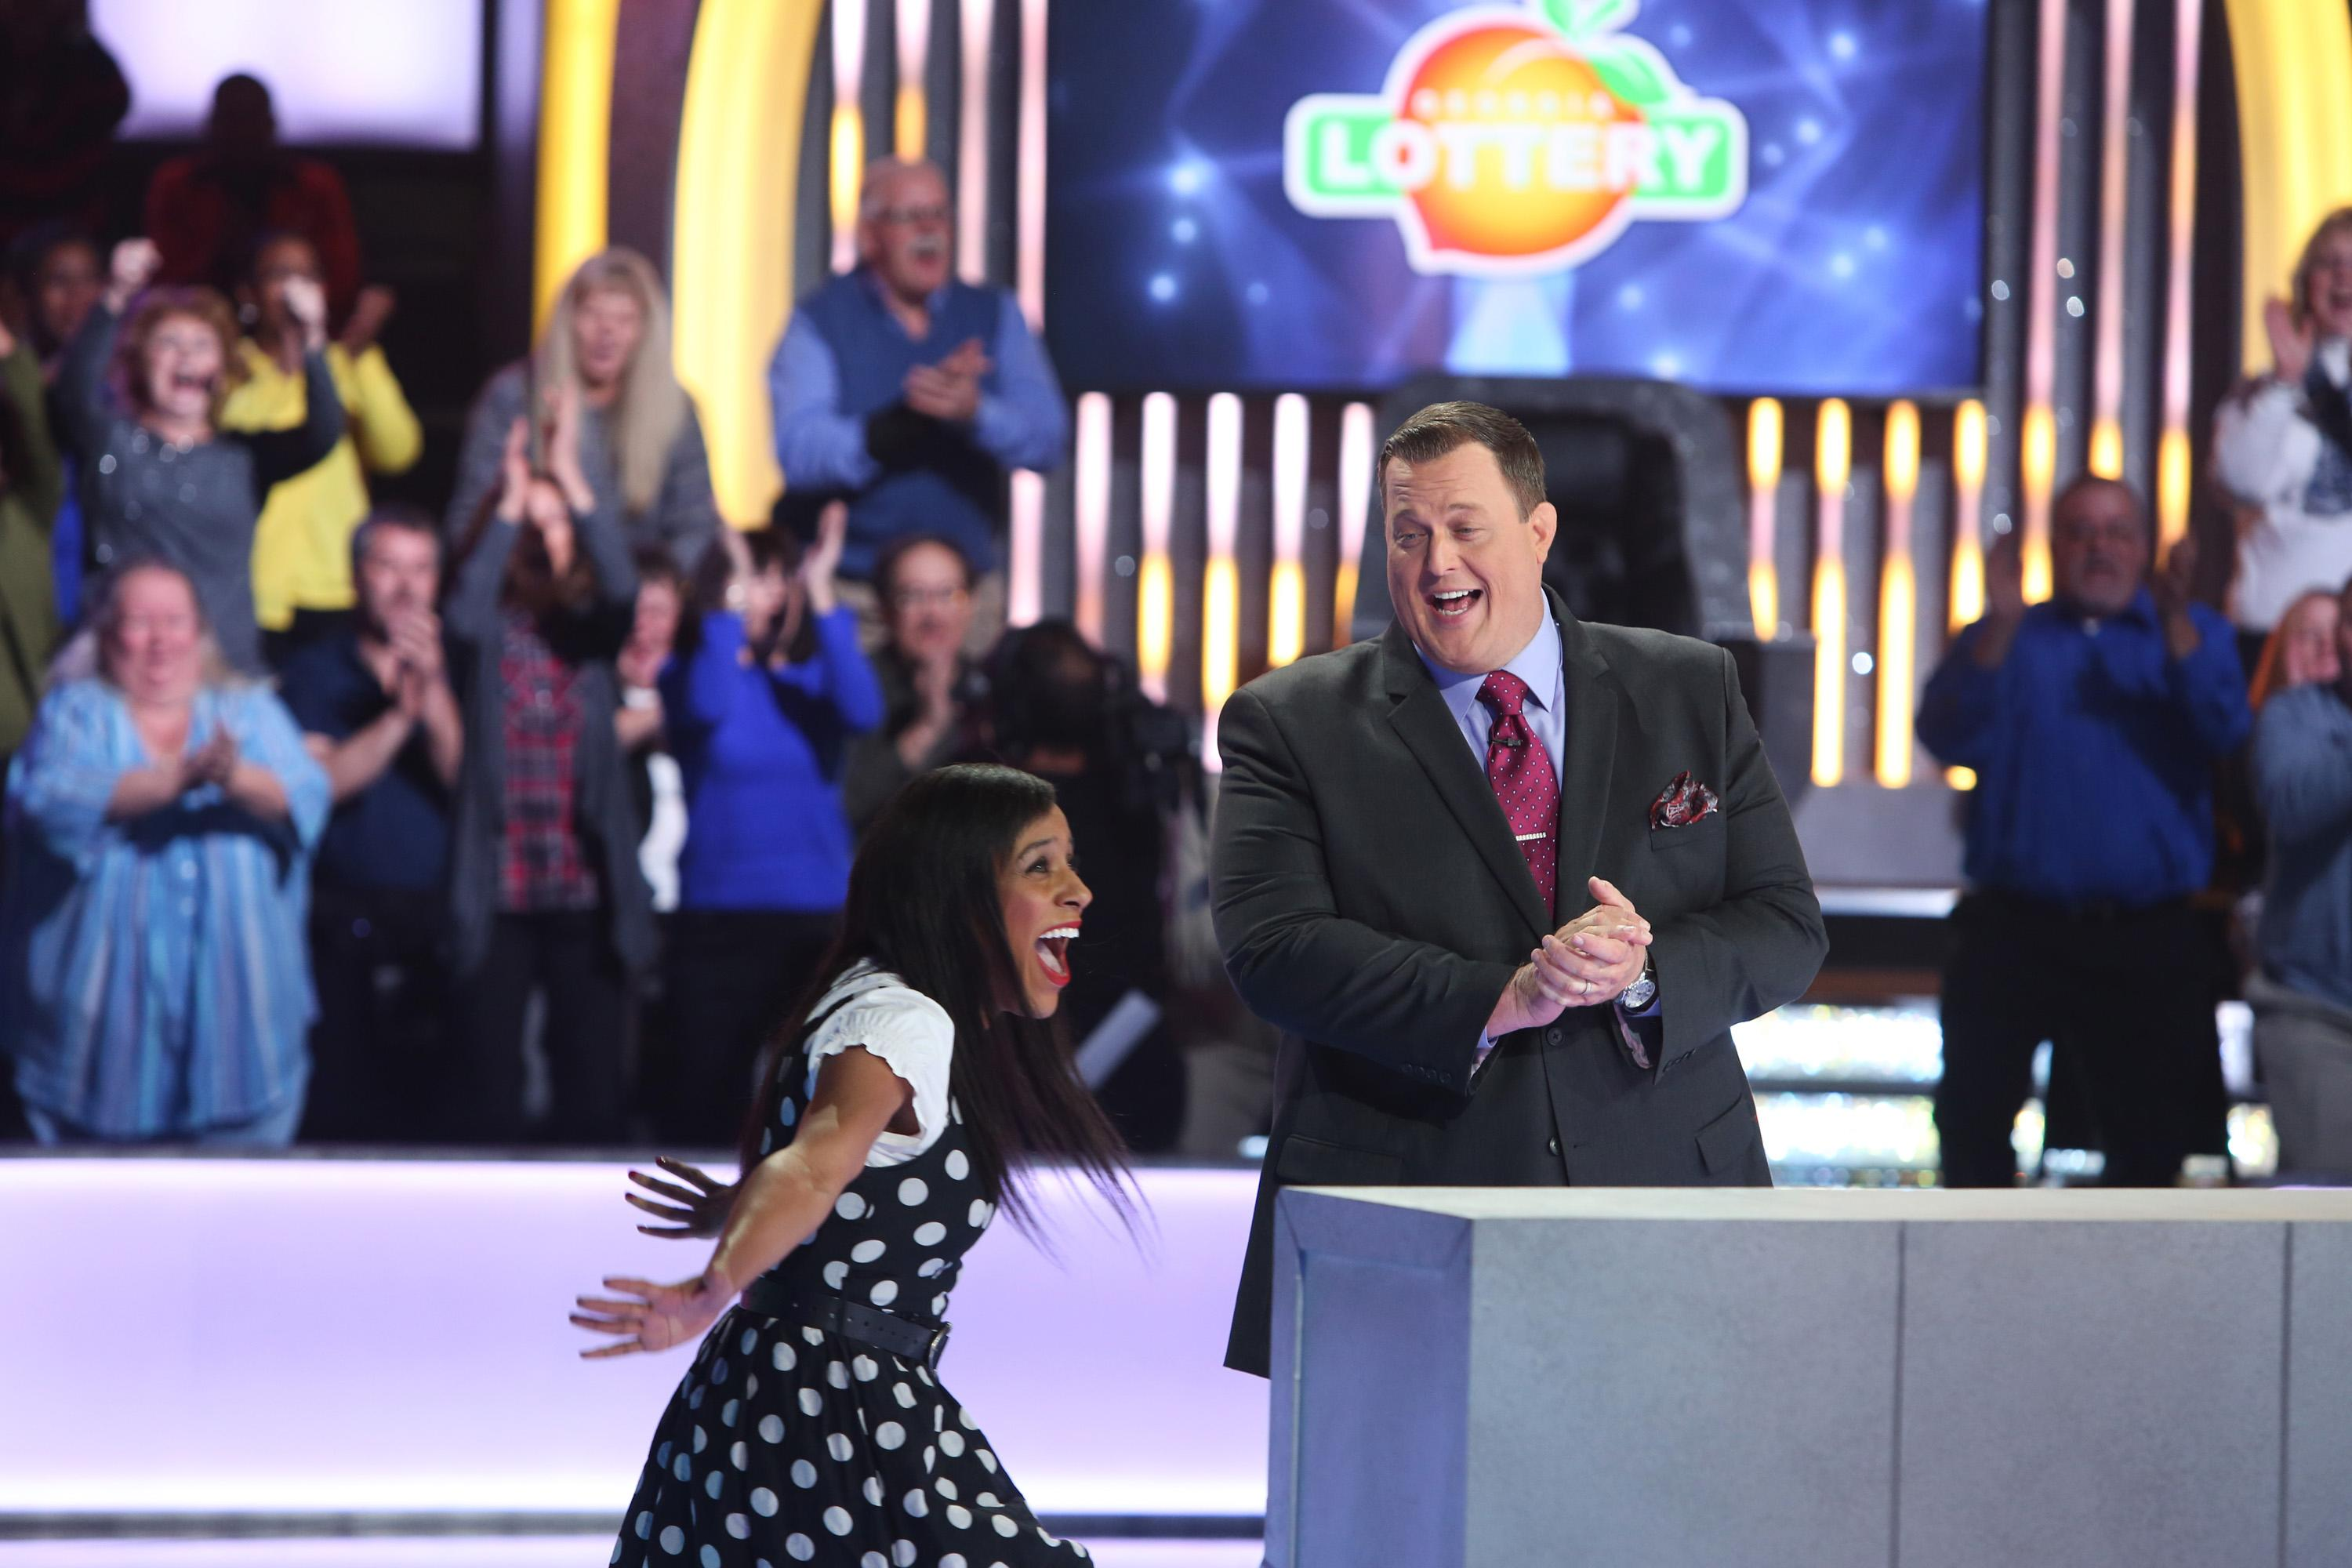 Game show is lottery, Monopoly combo; Billy Gardell hosts